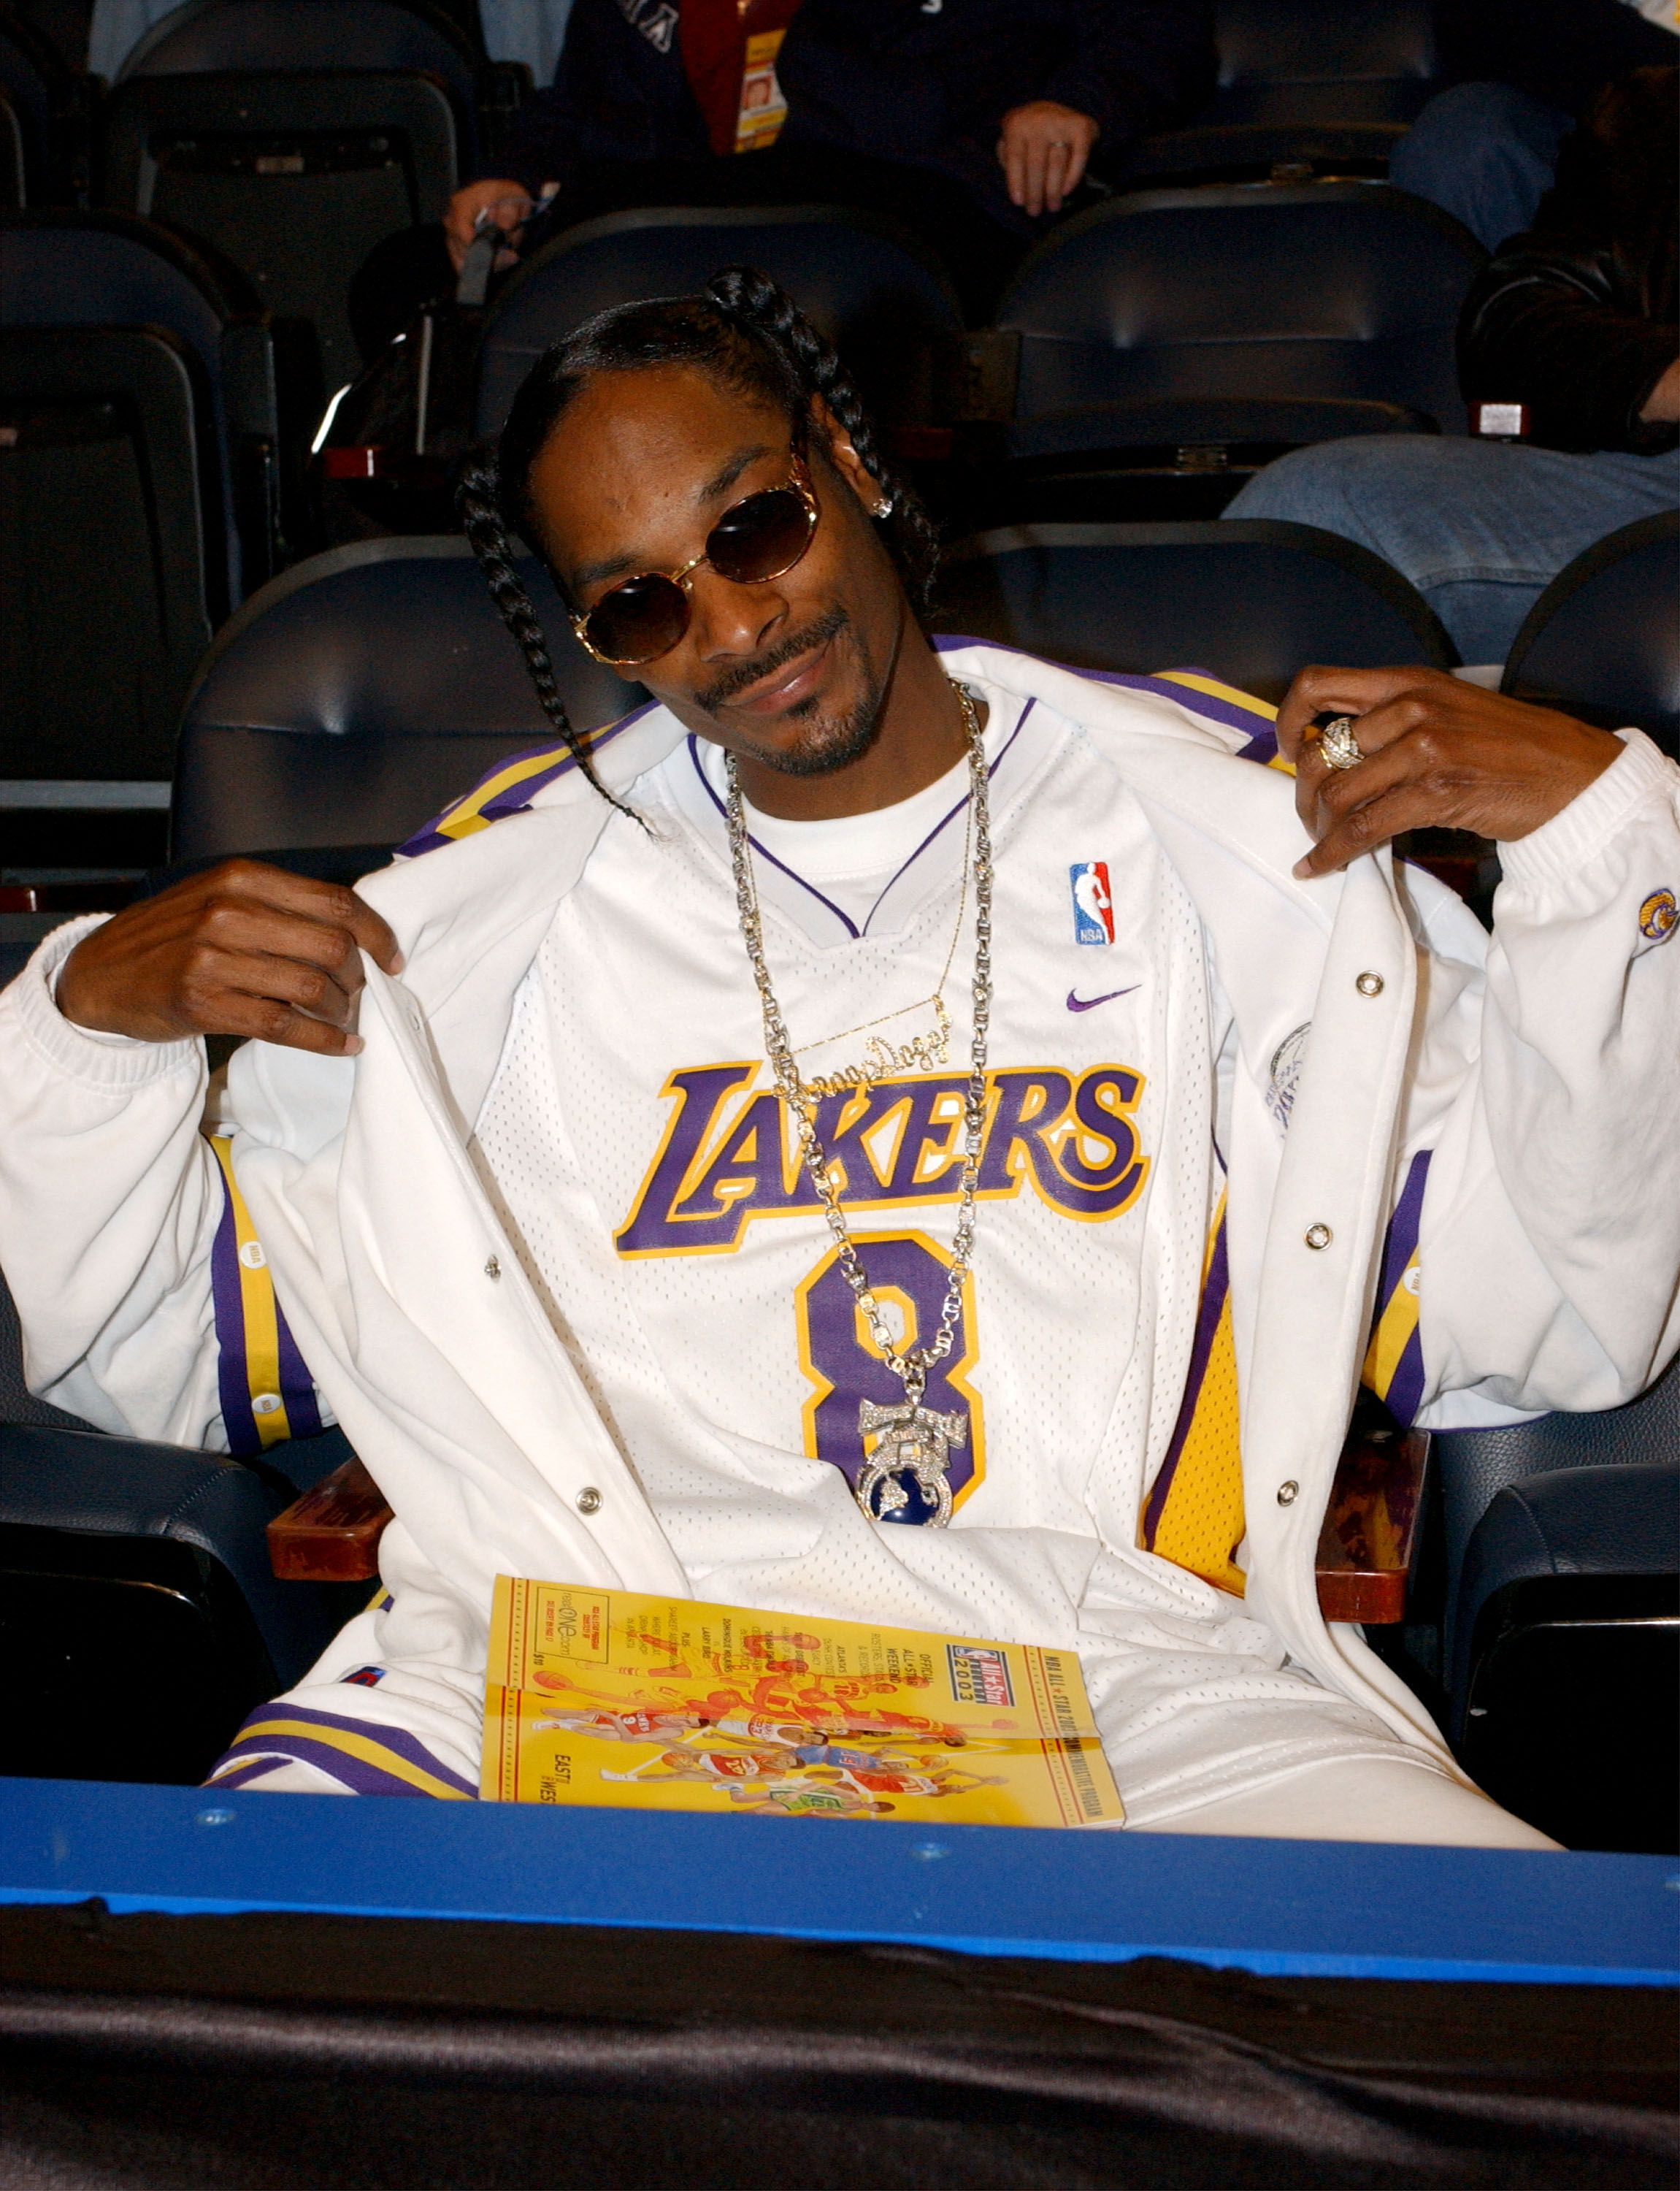 Snoop Dogg at the 2003 NBA All-Star game at the Phillips Arena on February 9, 2003. | Photo: Getty Images